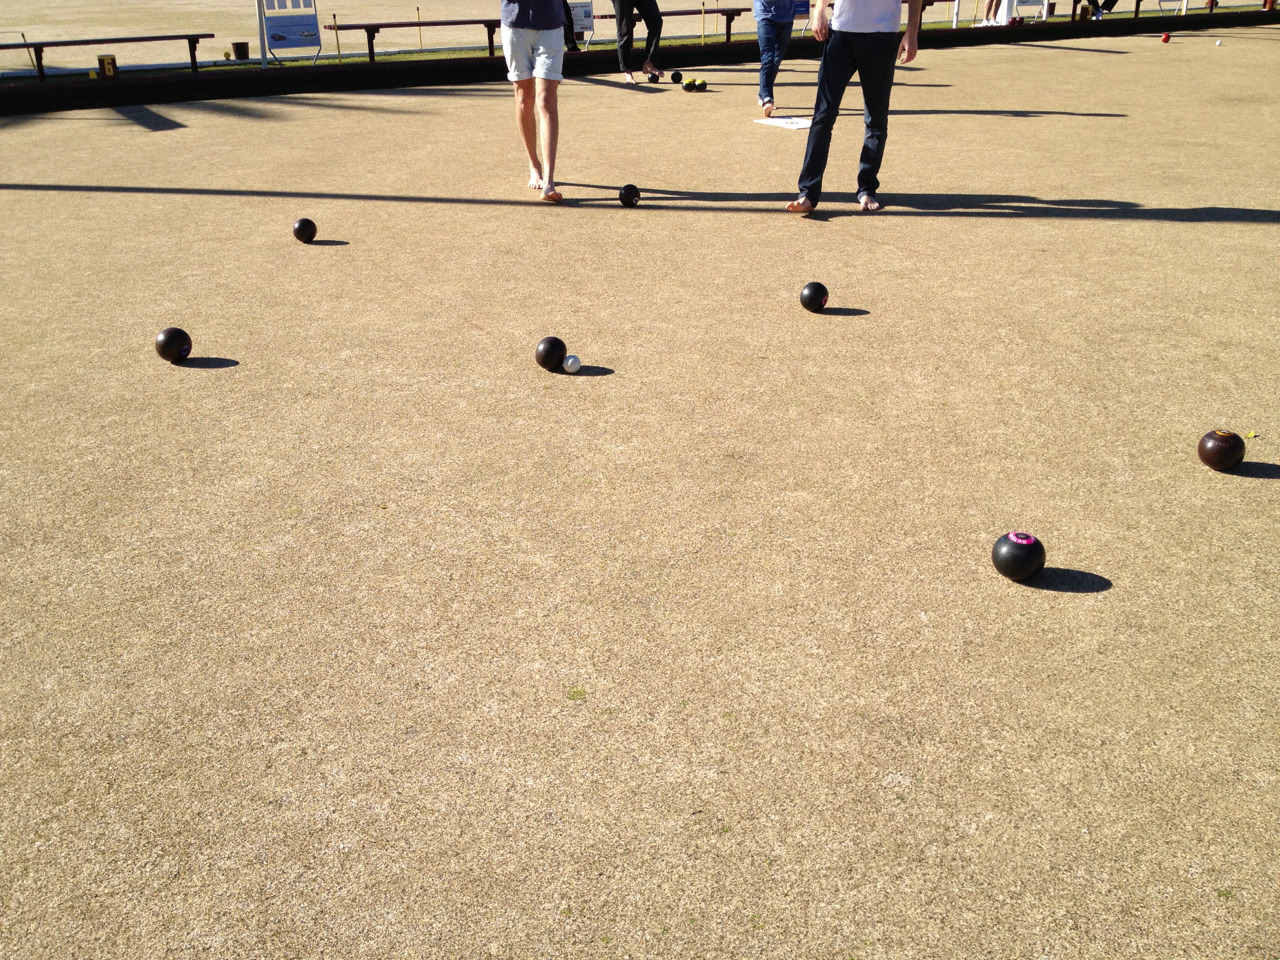 Love a casual Saturday playing bowls and having some beers